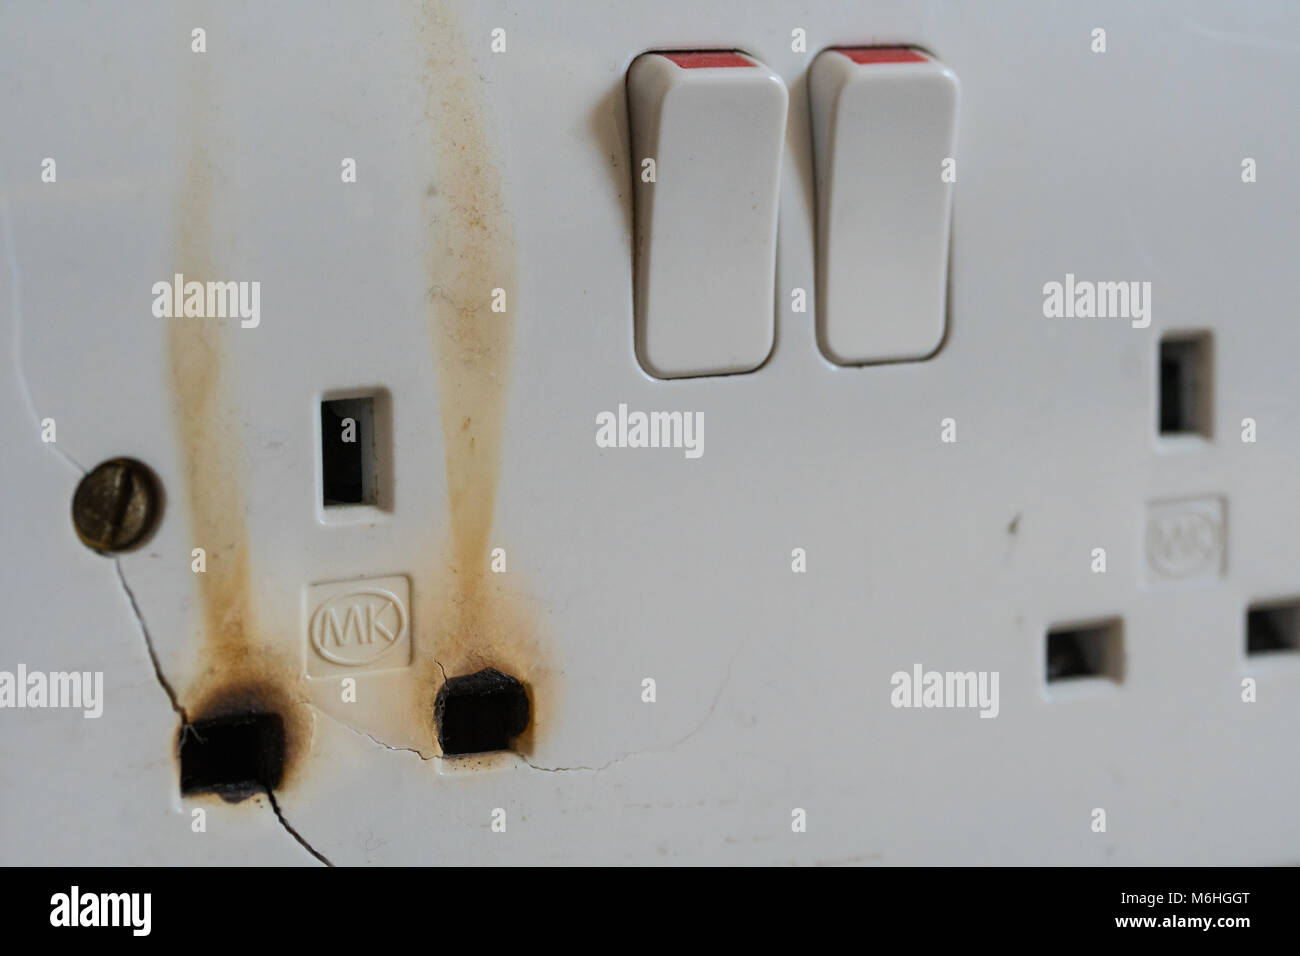 A Burnt Out Electrical Wall Socket Caused By Overloading With Too M Hggt